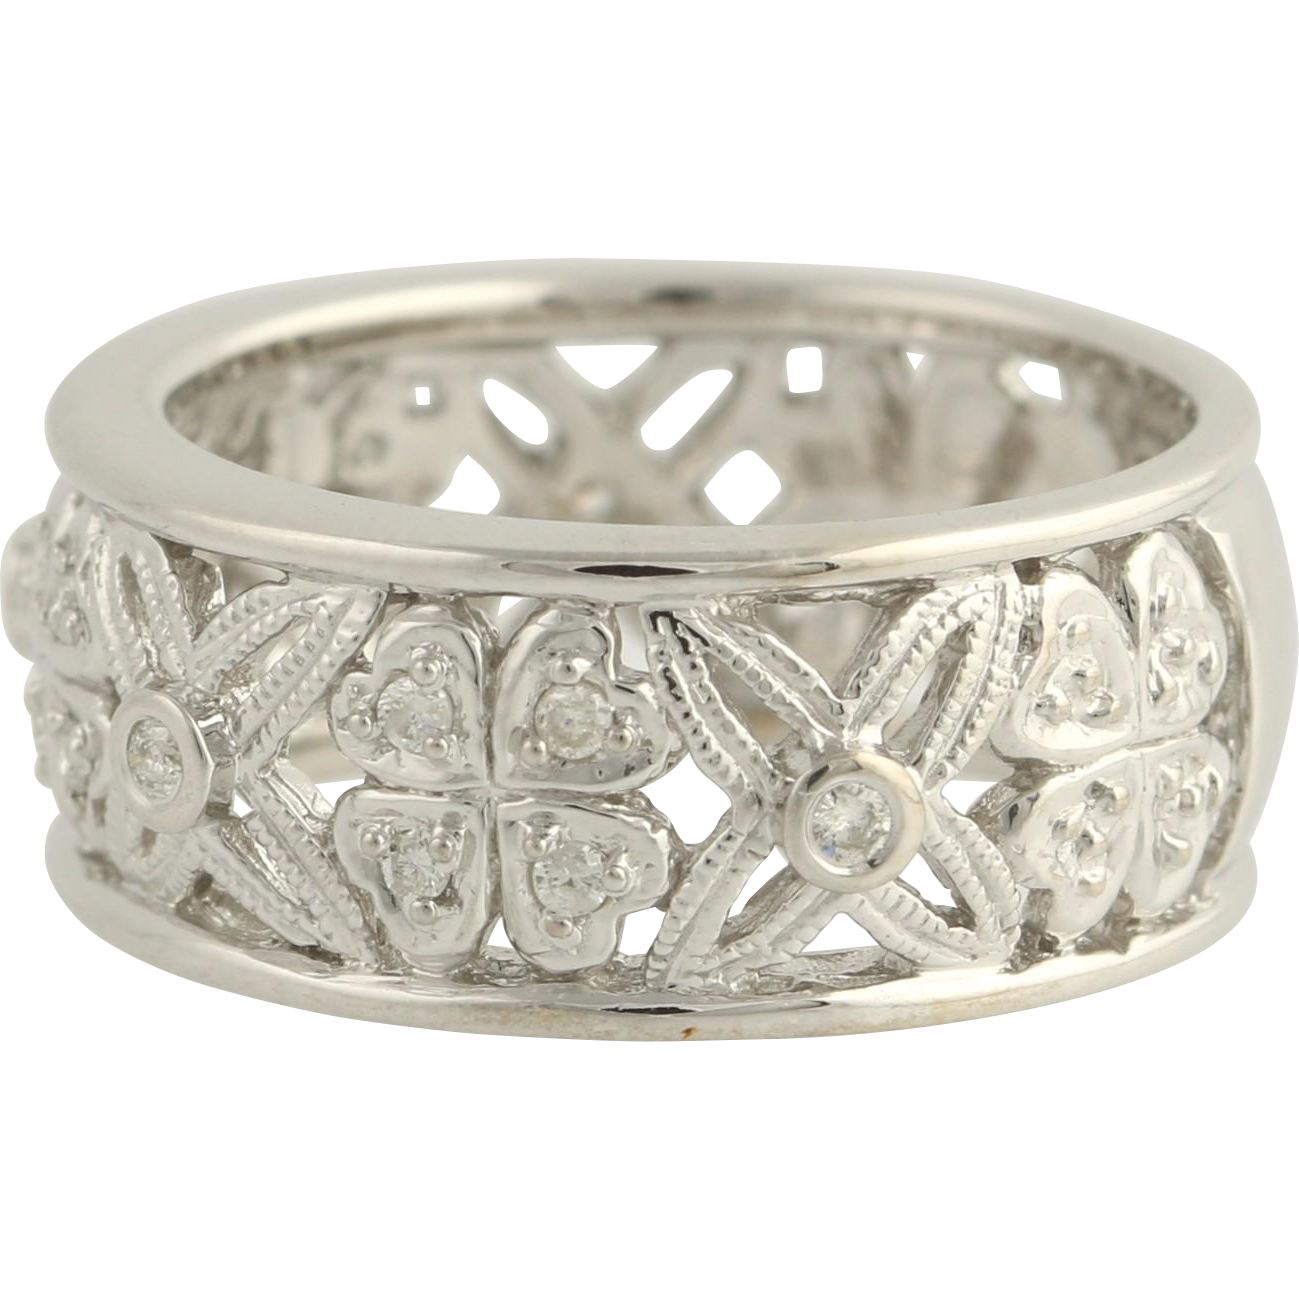 Floral Diamond Cocktail Band - 14k White Gold Size 6 1/2 - 6 3/4 Genuine .20ctw